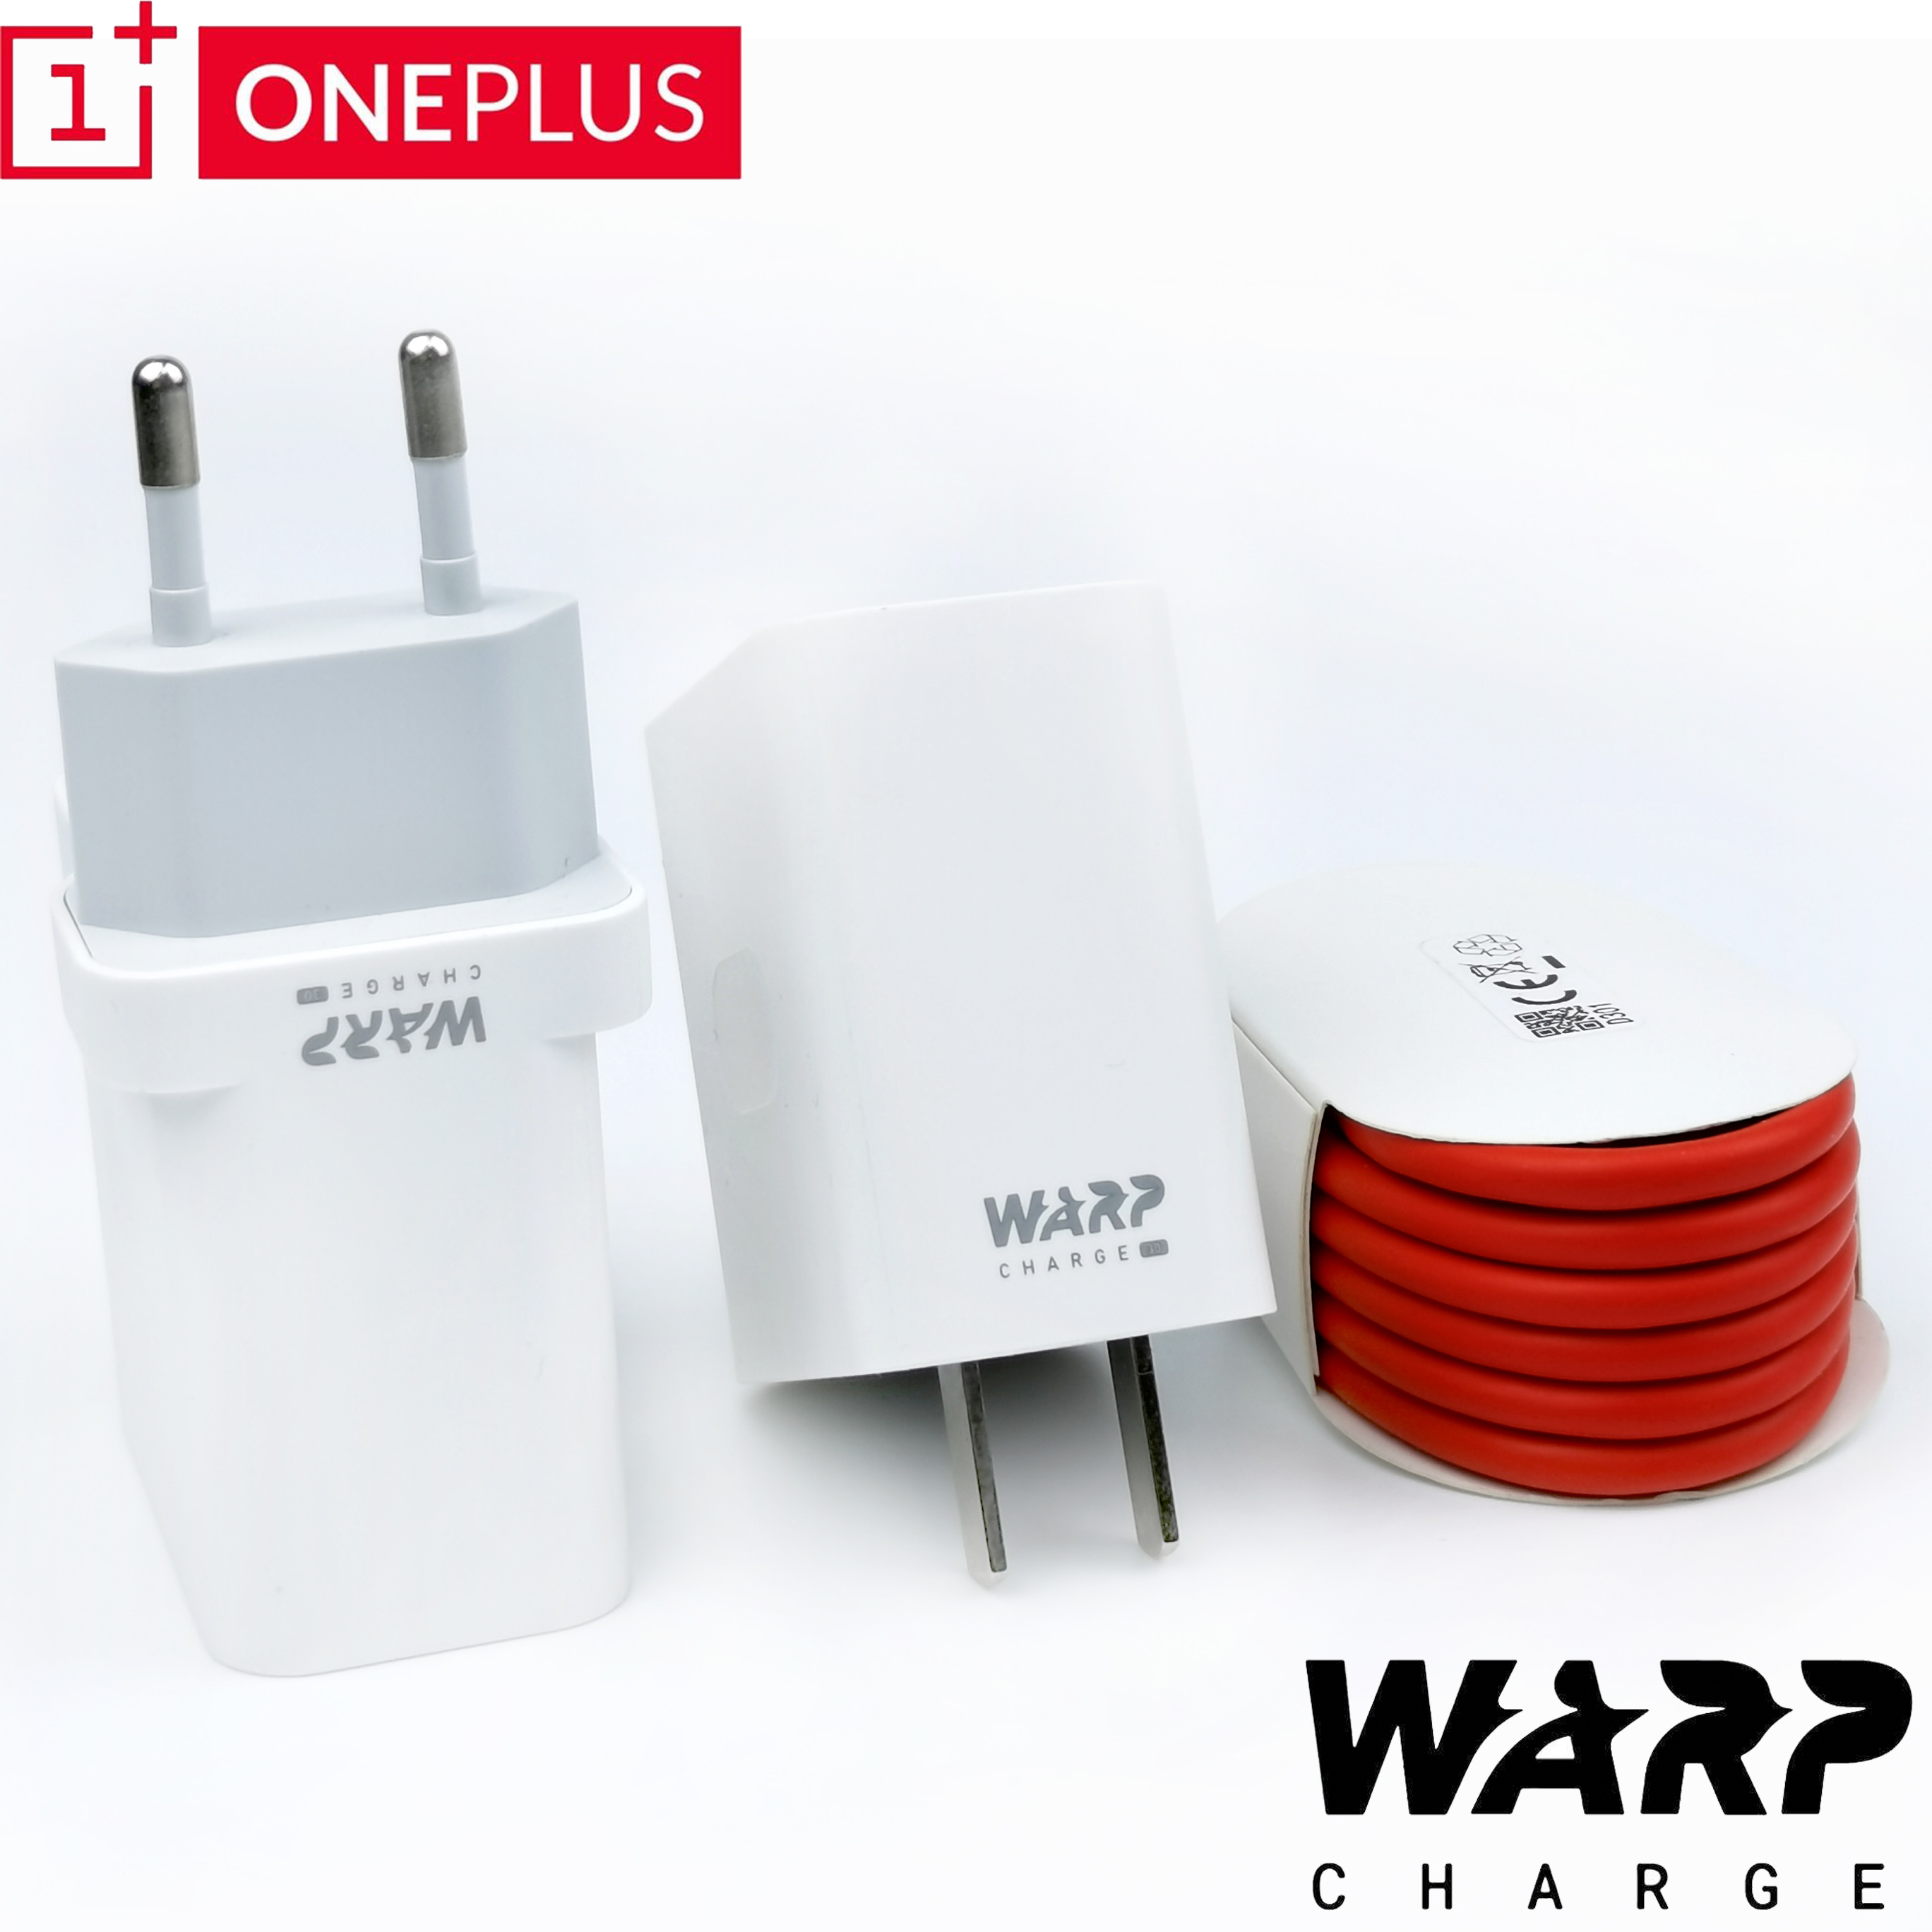 Original Oneplus 8 Charger Warp 30W fast Type-C Cable 6A Dash Charge adapter For 1 Plus 8 Pro 7T 7 6T 6 5T 5 30T Travel Adapter